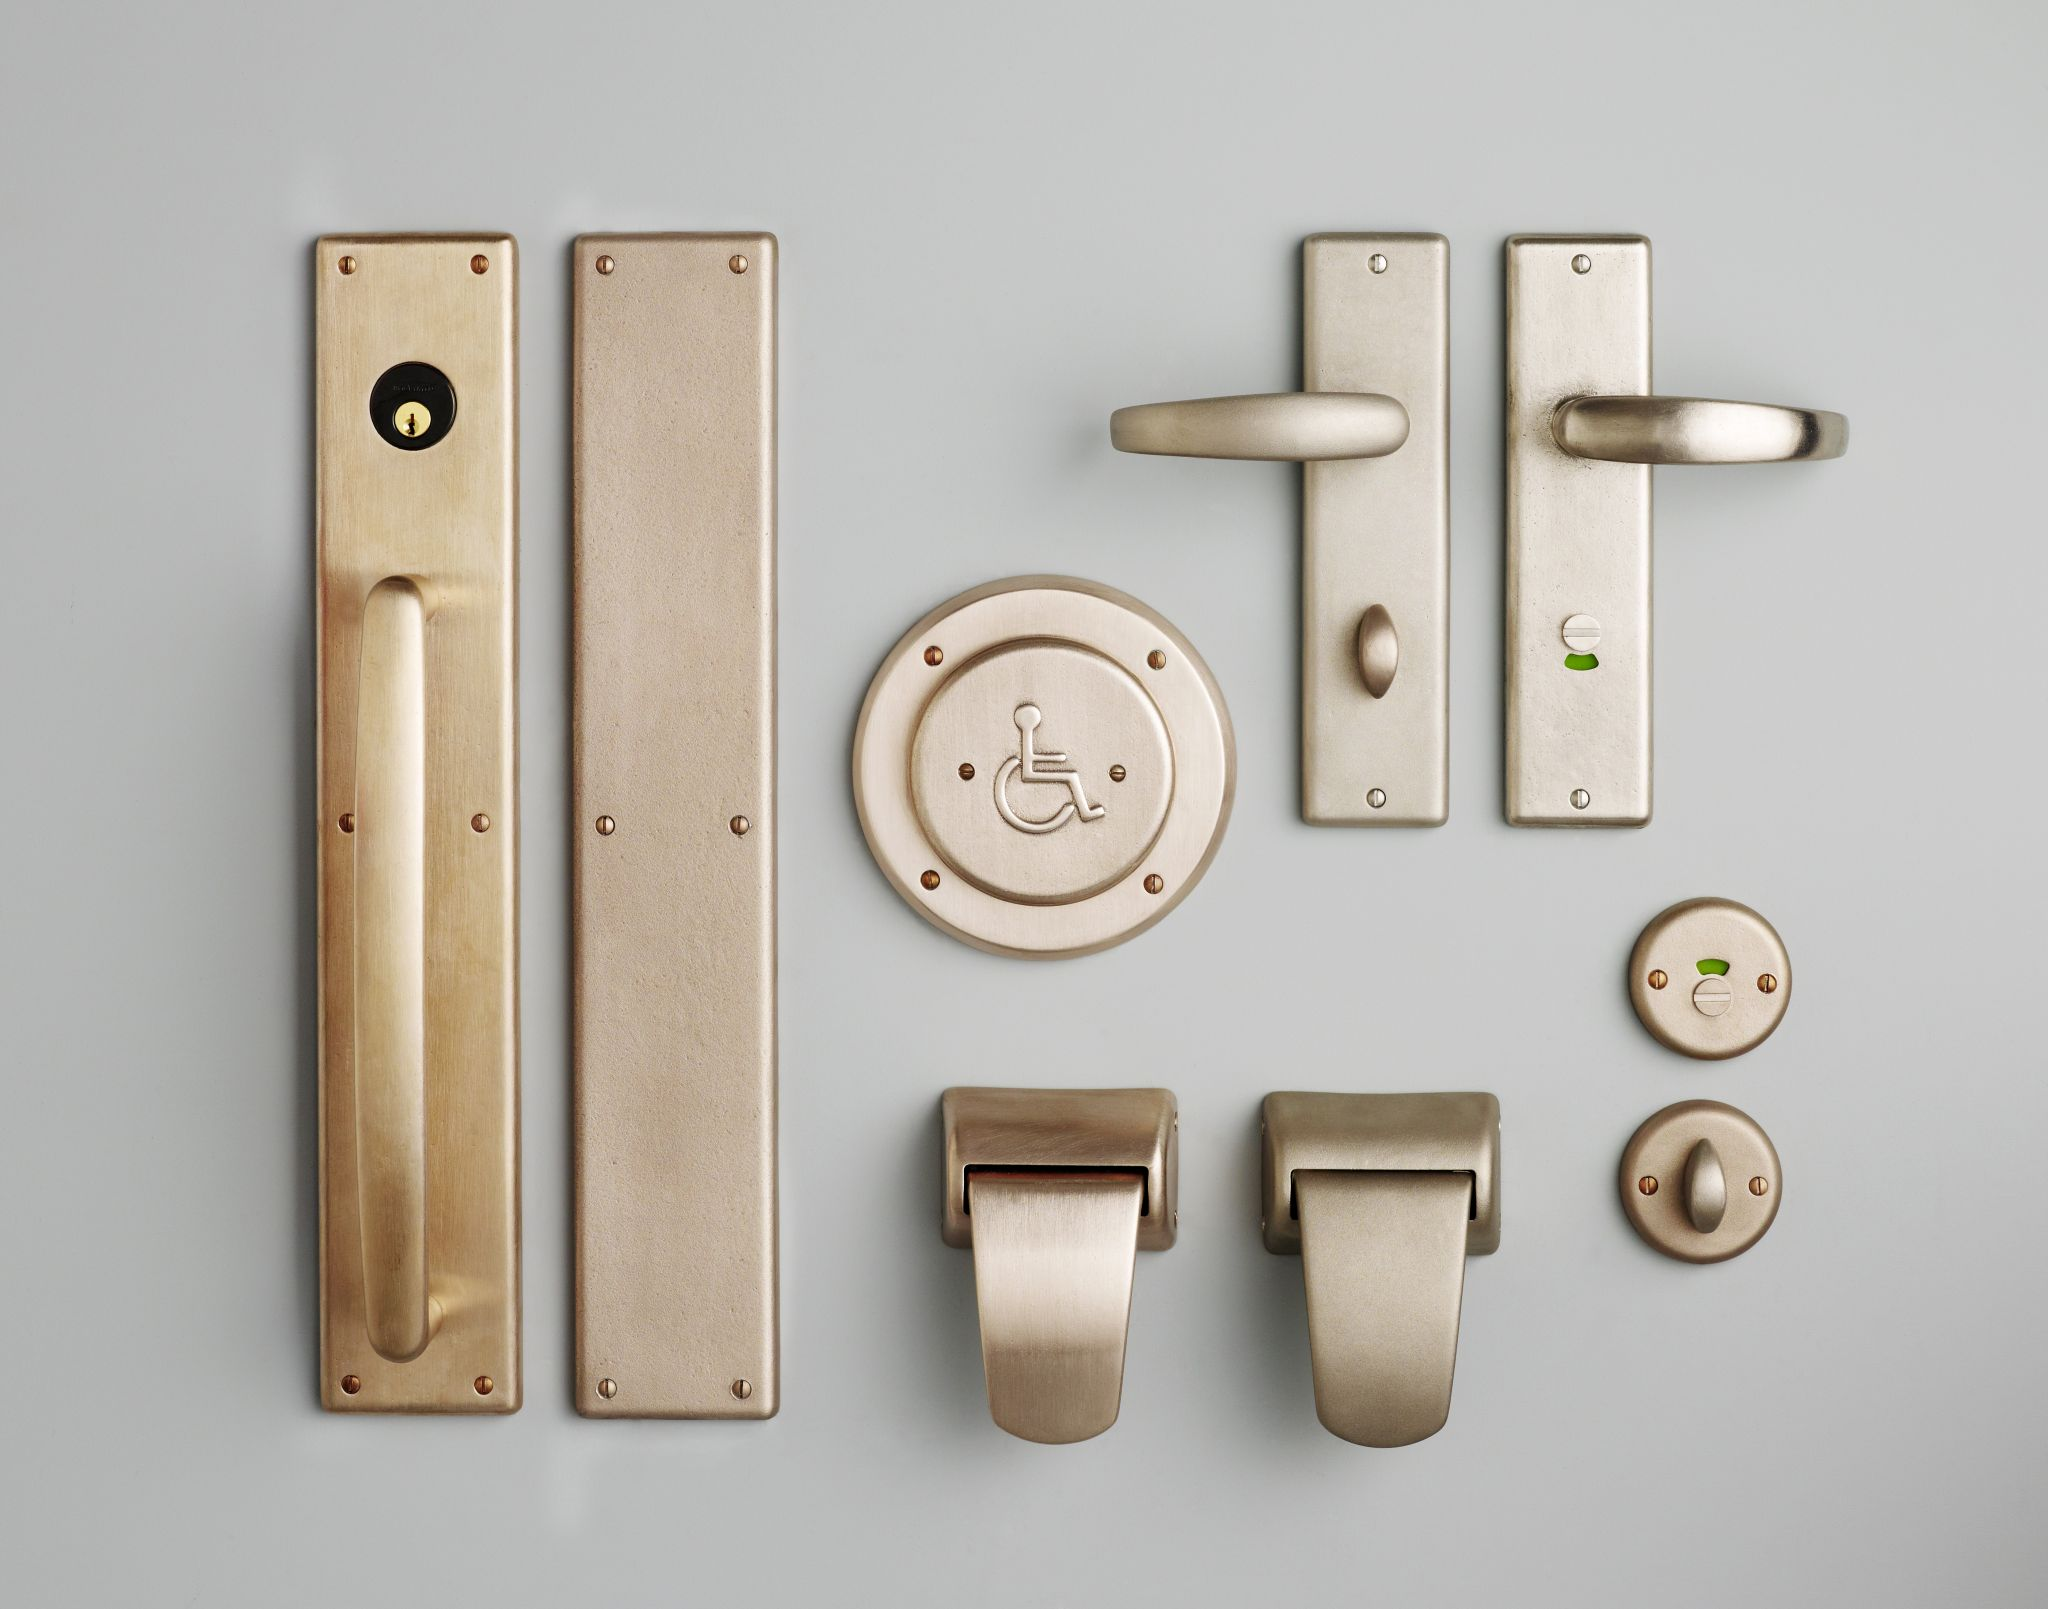 This is a collection of antimicrobial copper door hardware products.